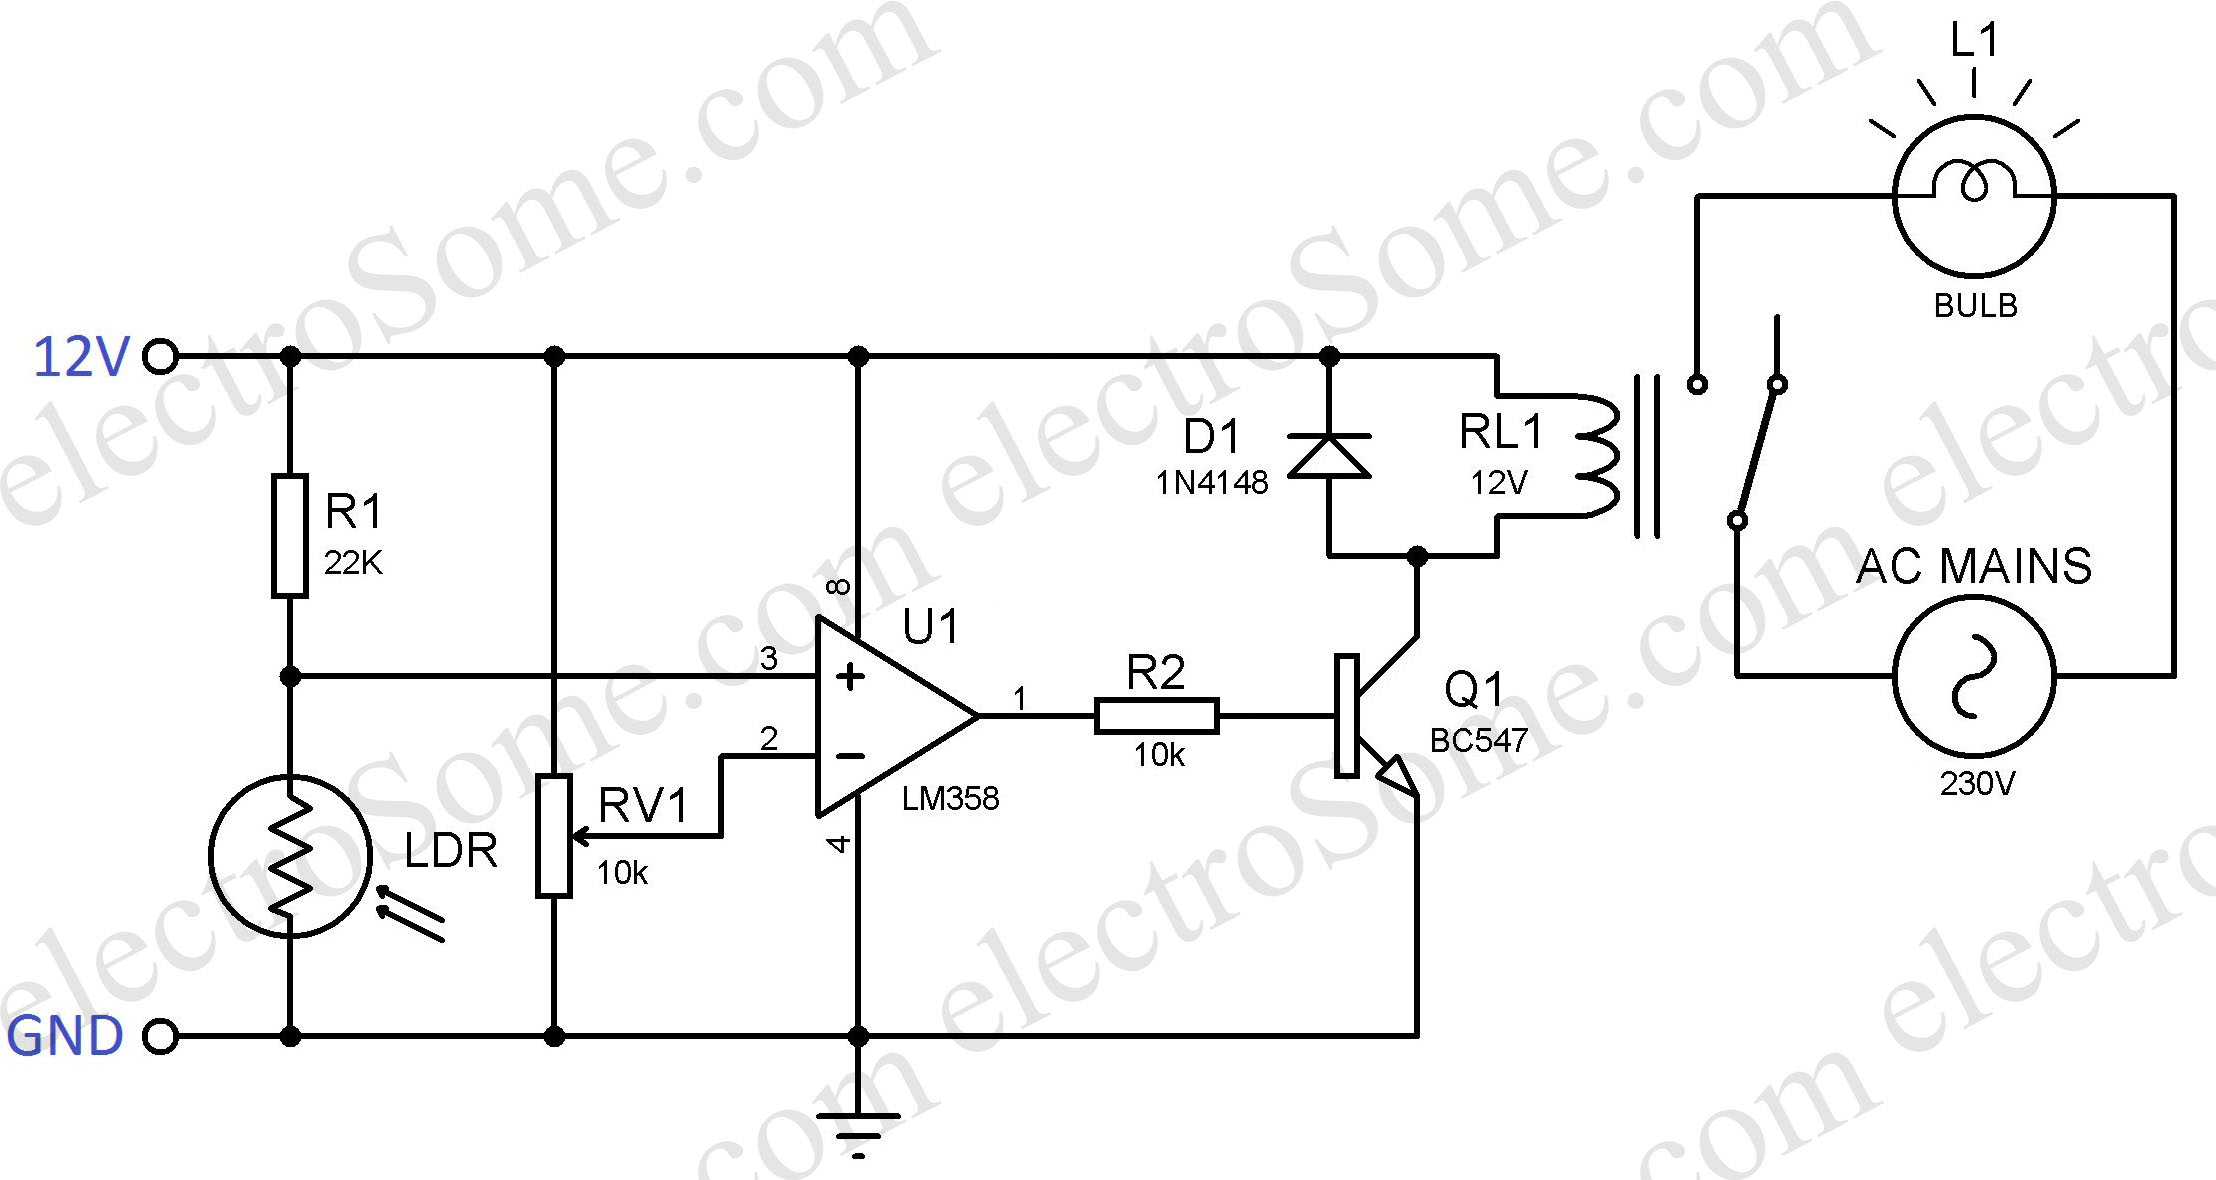 Automatic Night Lamp Using Ldr Op Amp Single Power Supply Circuit Diagram